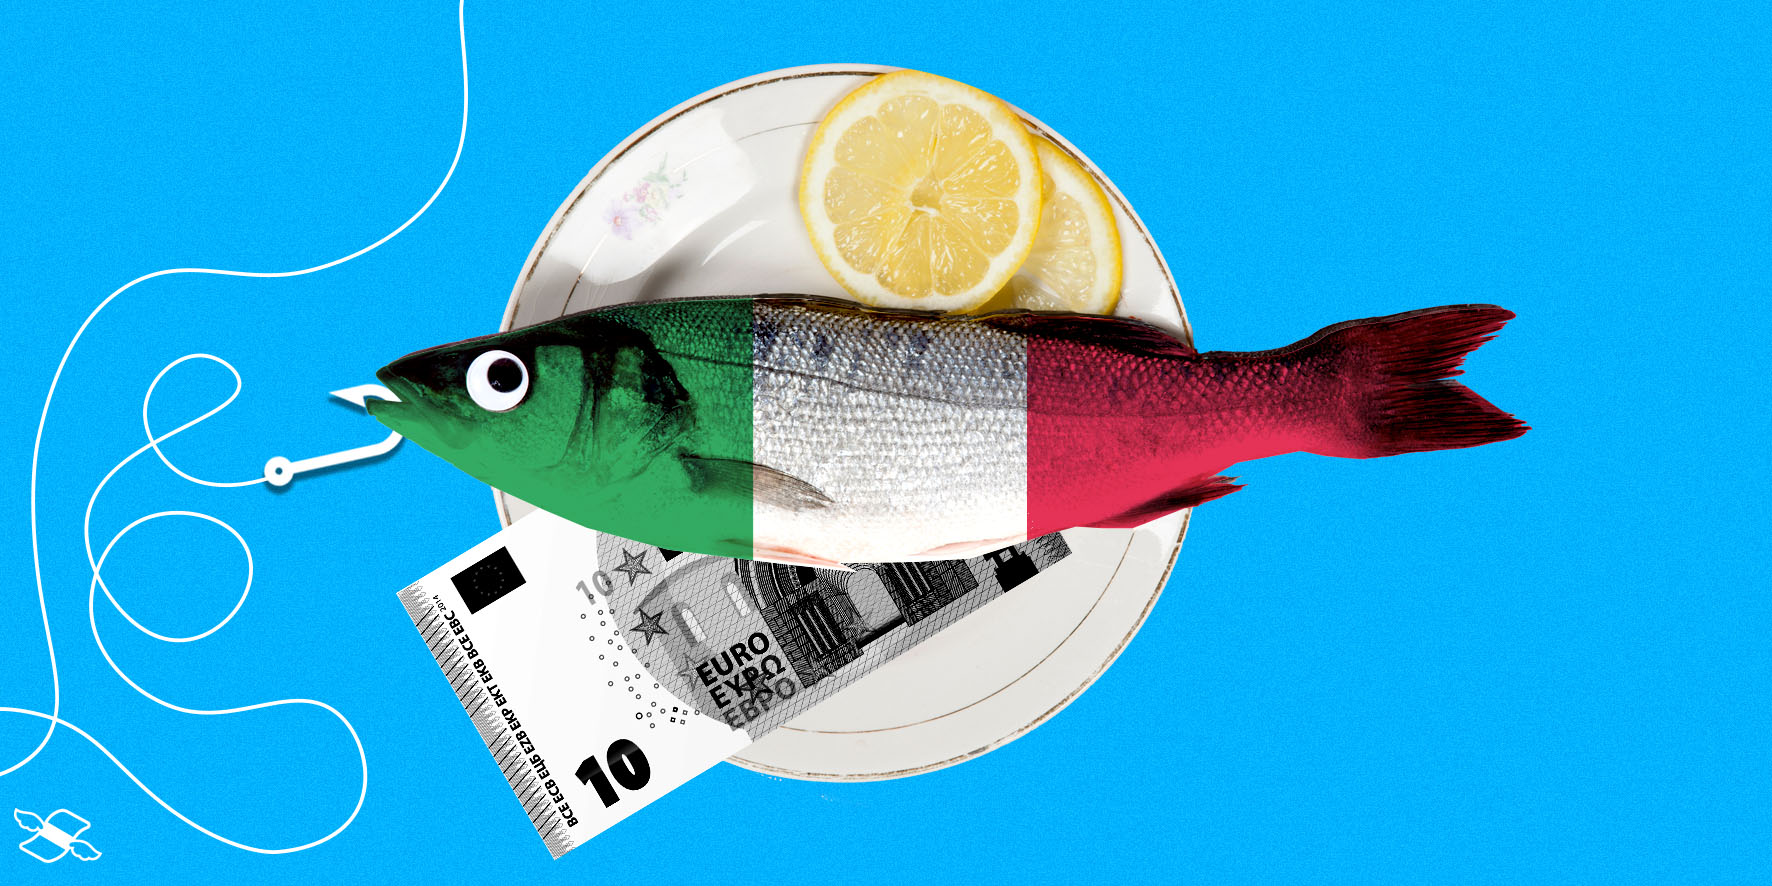 Italy is in a recession